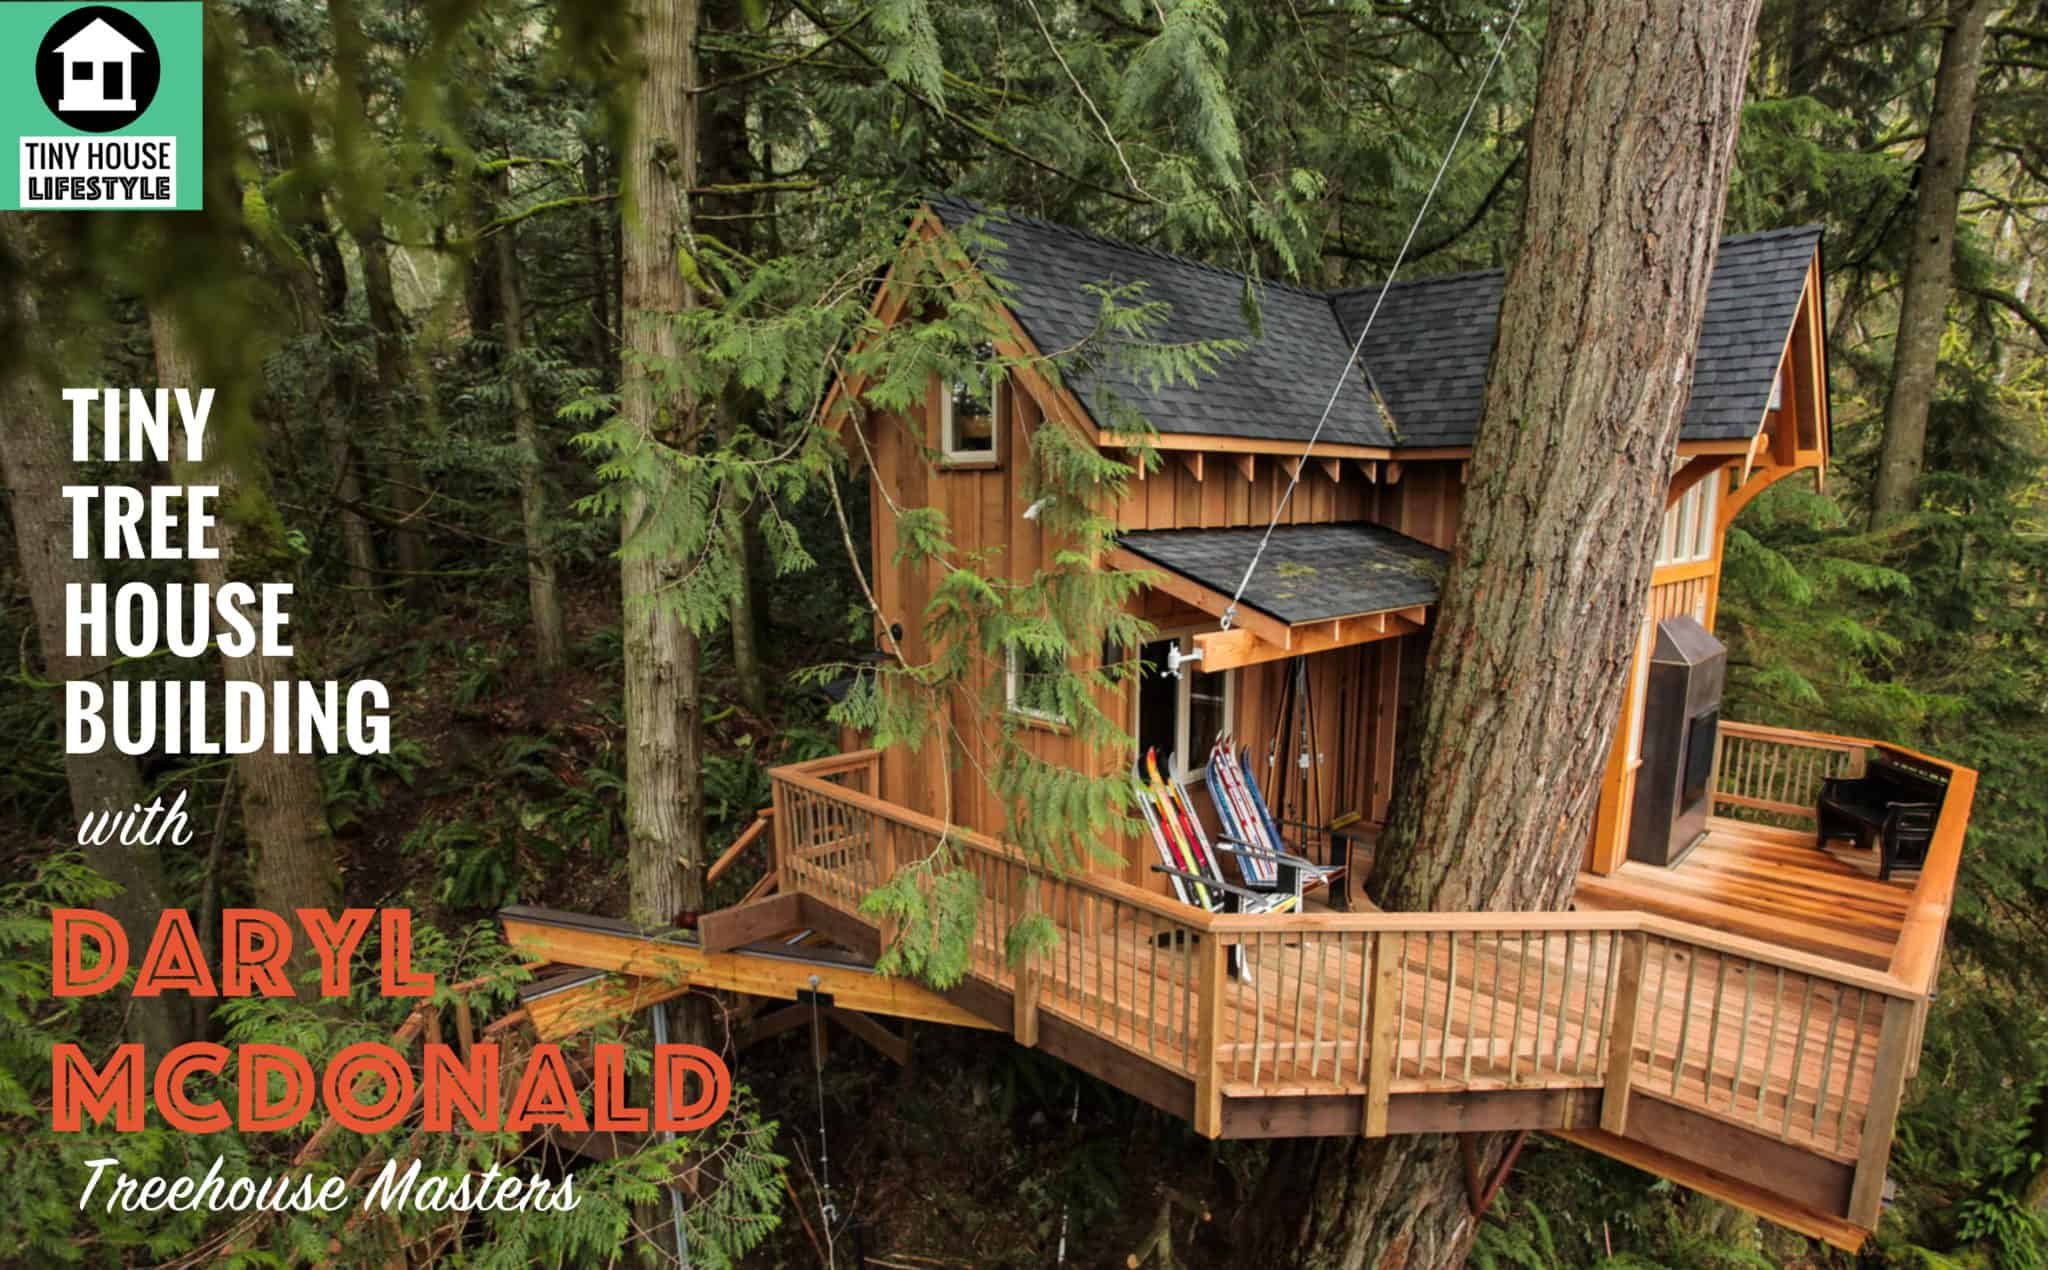 Build A Tiny House In The Trees With Treehouse Masters Daryl